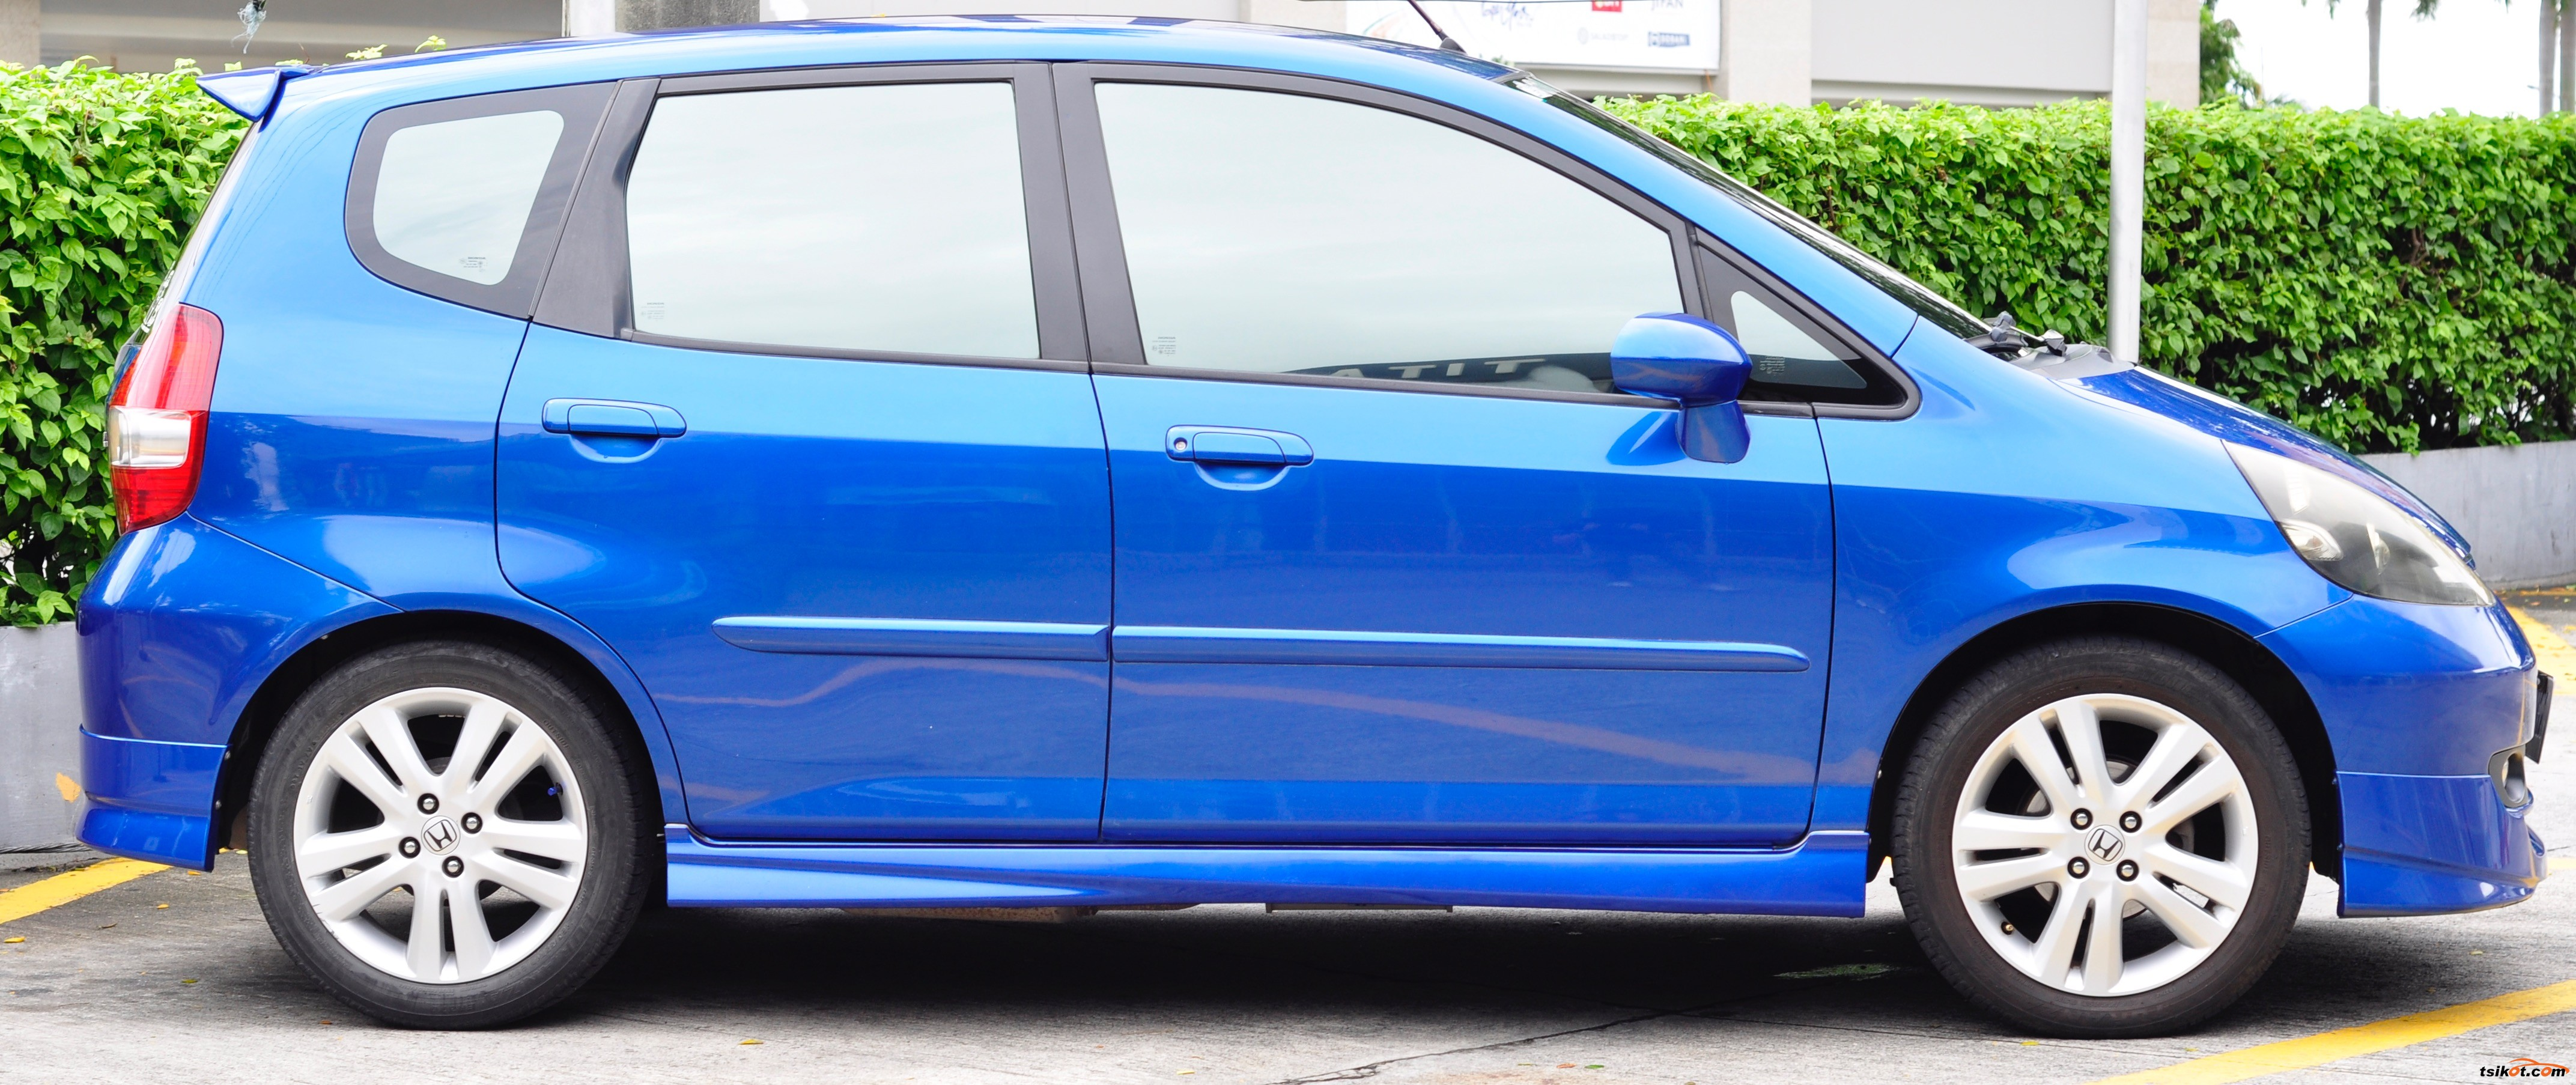 Honda Cars In Philippines For Sale